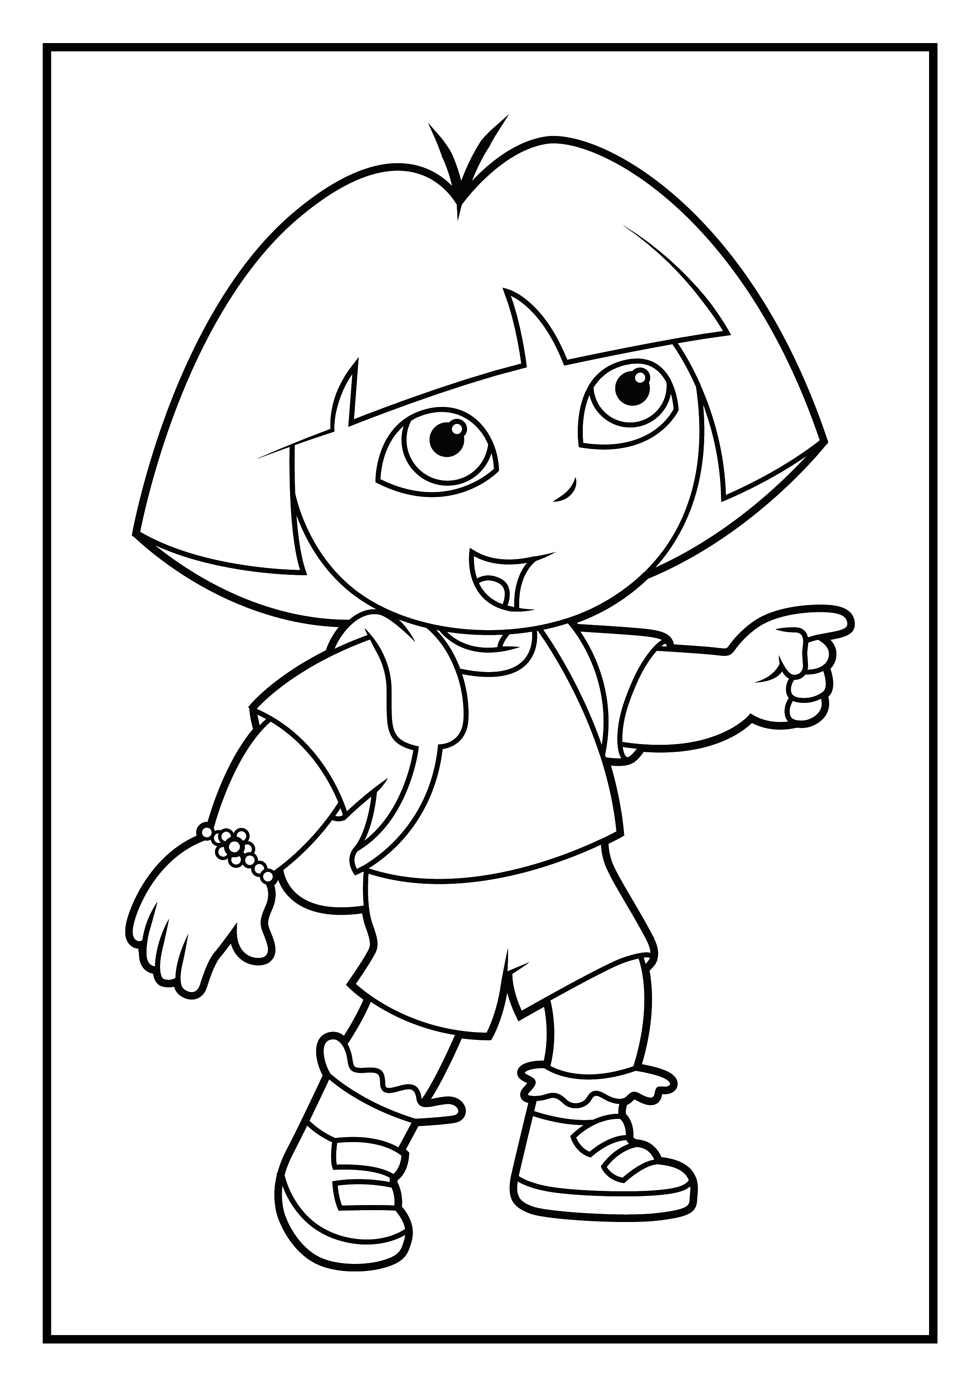 coloring pages games - dora coloring page games coloring pages